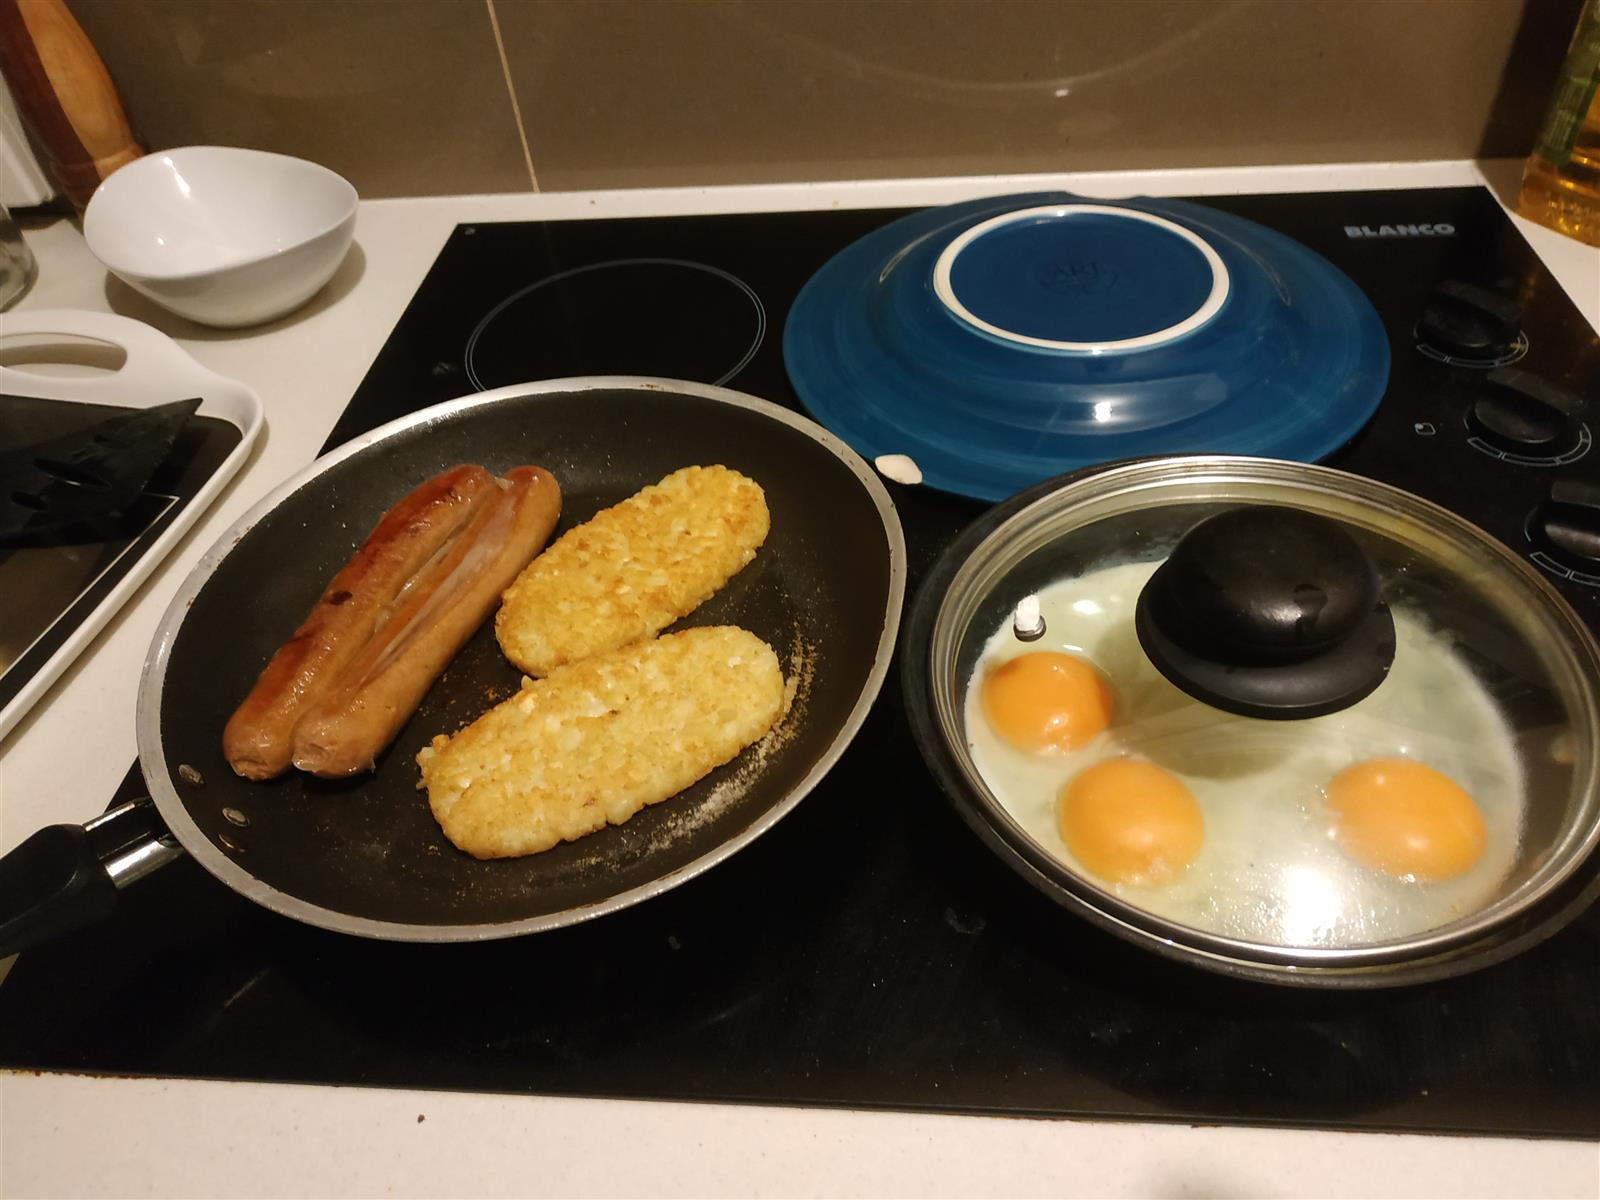 The Best Breakfast in the World Step by Step.: the Full English-img_20210501_205506-jpg